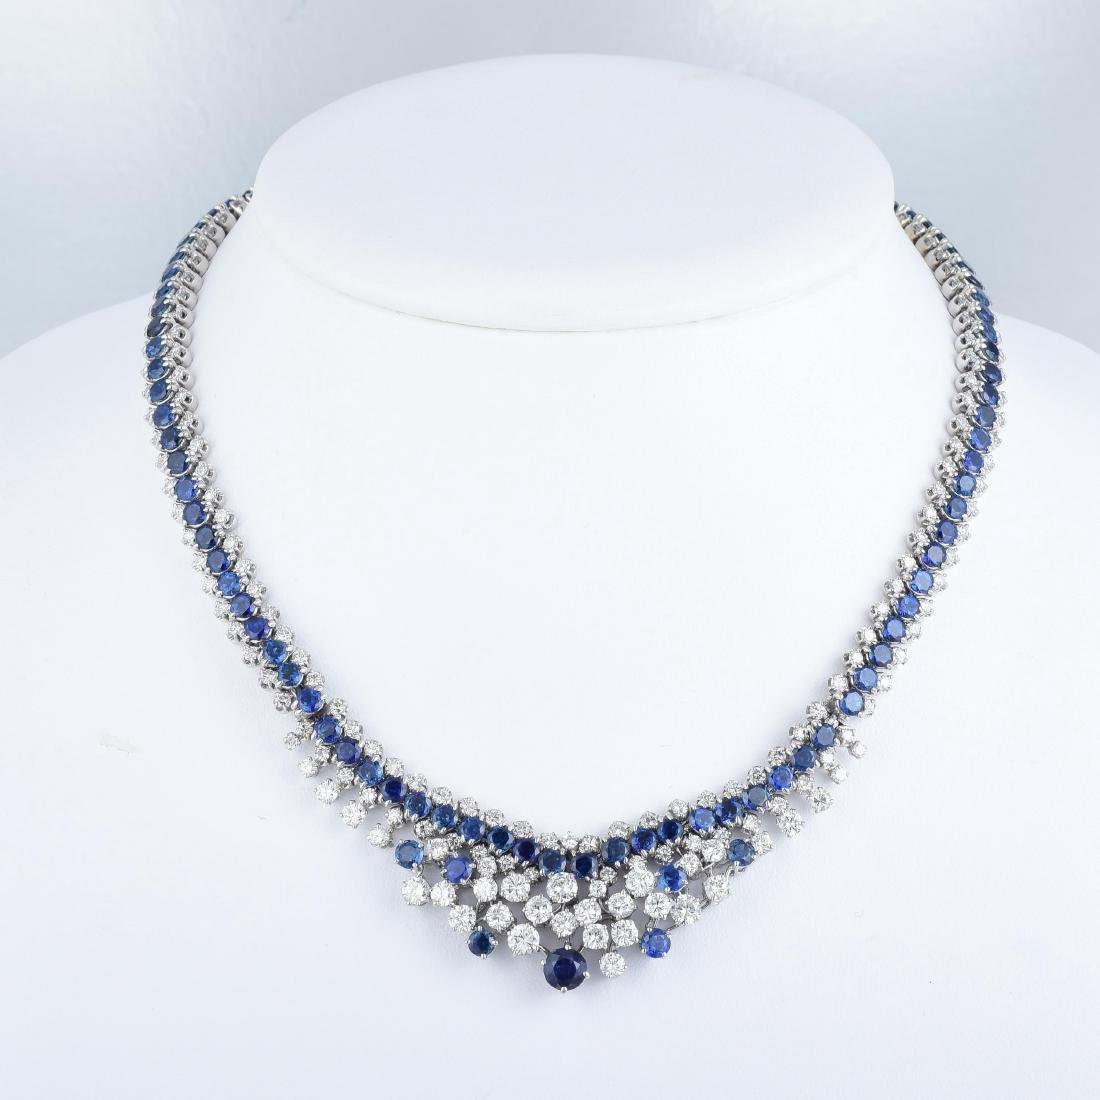 A Sapphire and Diamond Necklace and Bracelet Set - 4